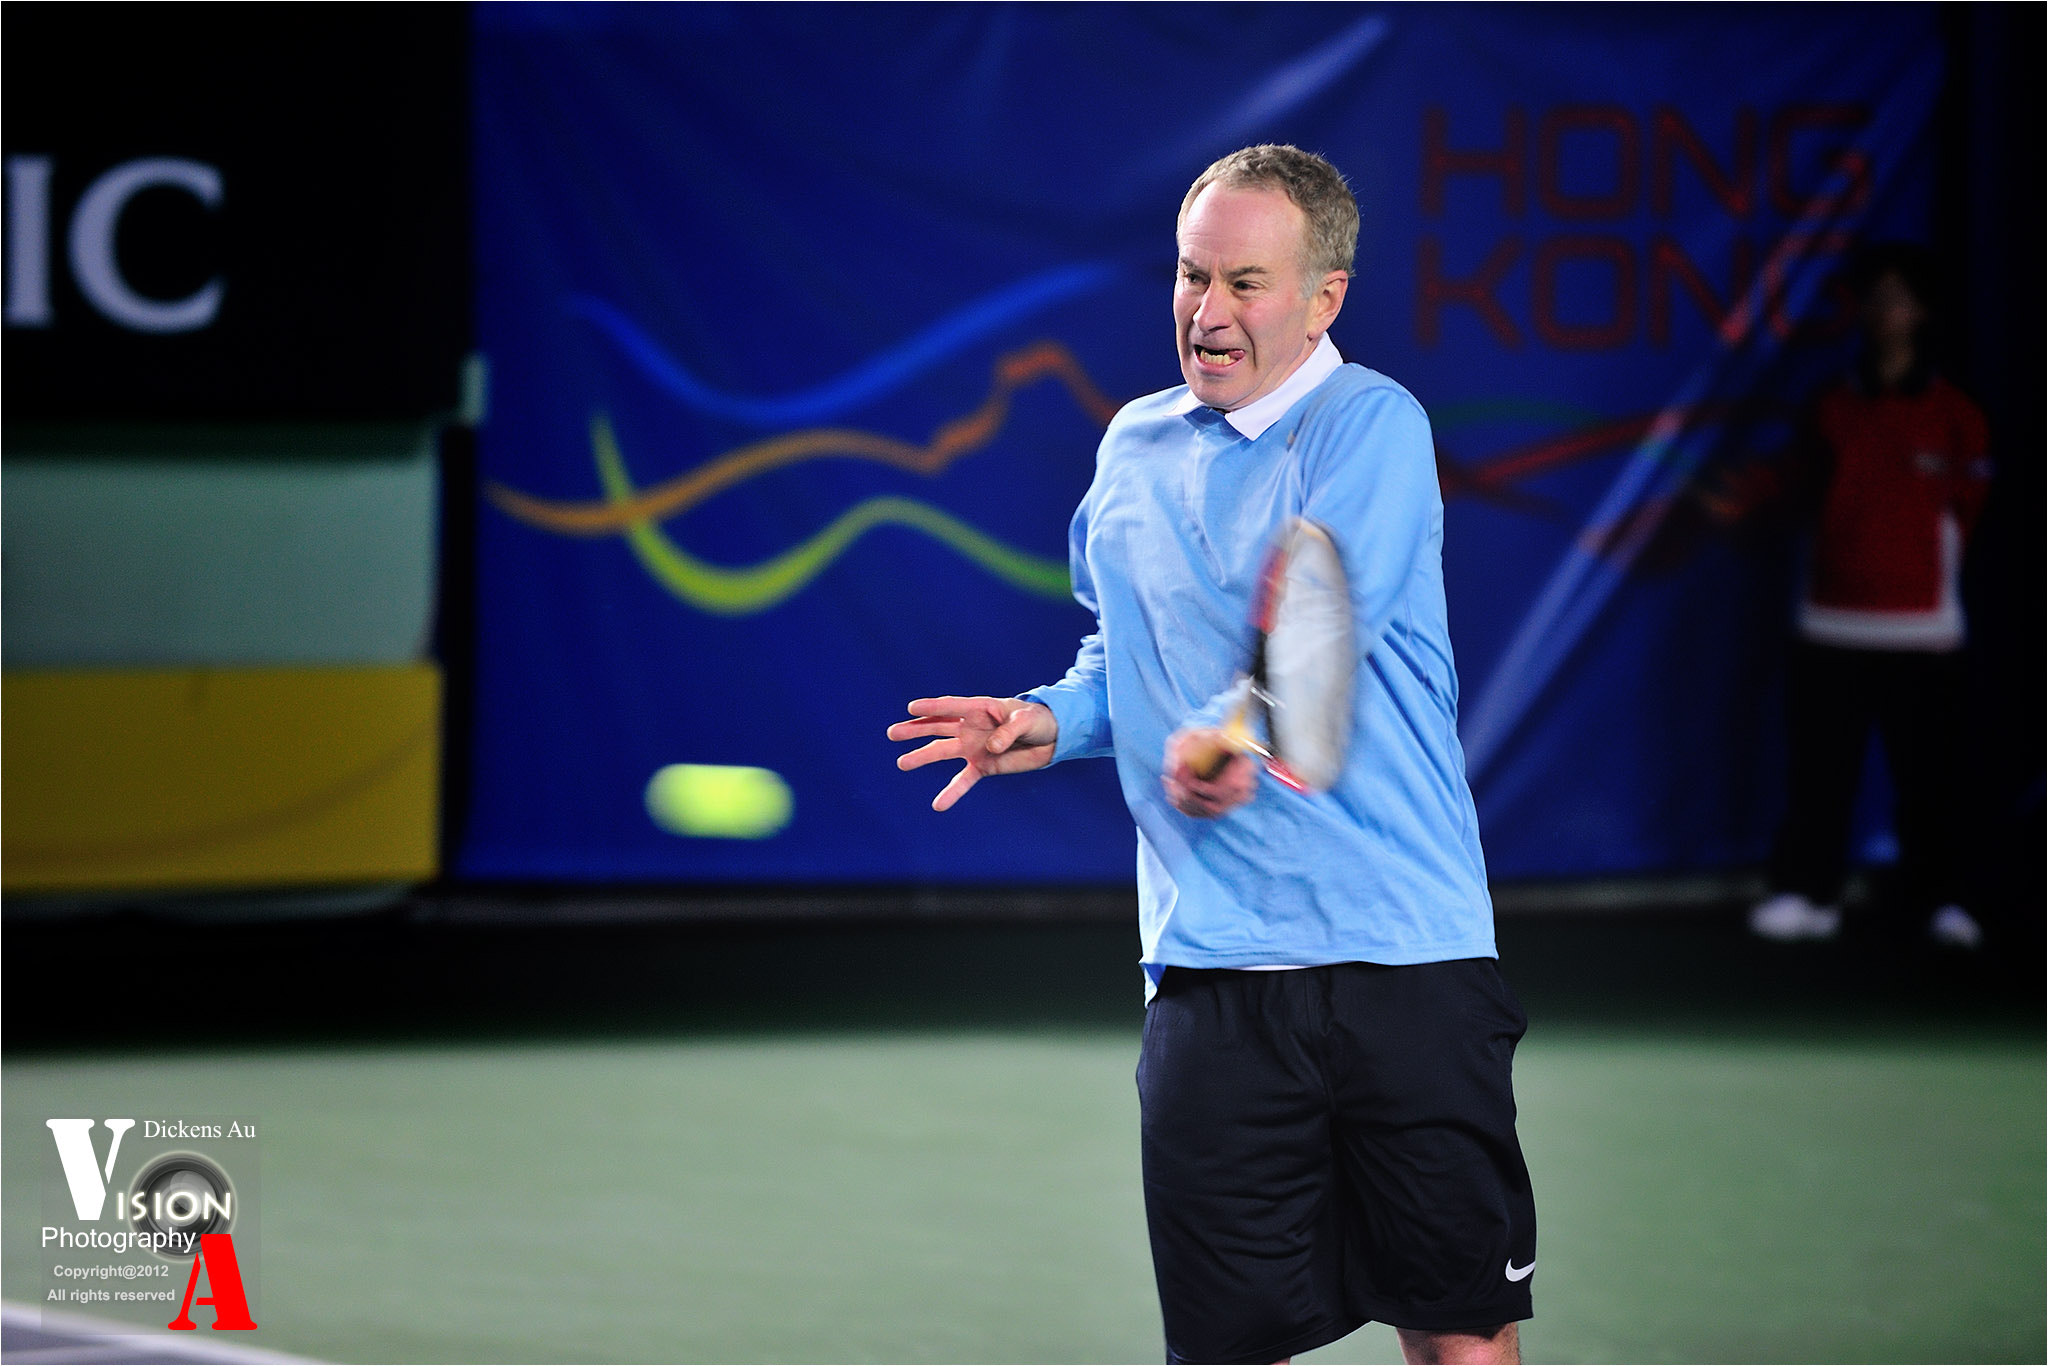 Photograph John McEnroe 01 by Dickens Au on 500px